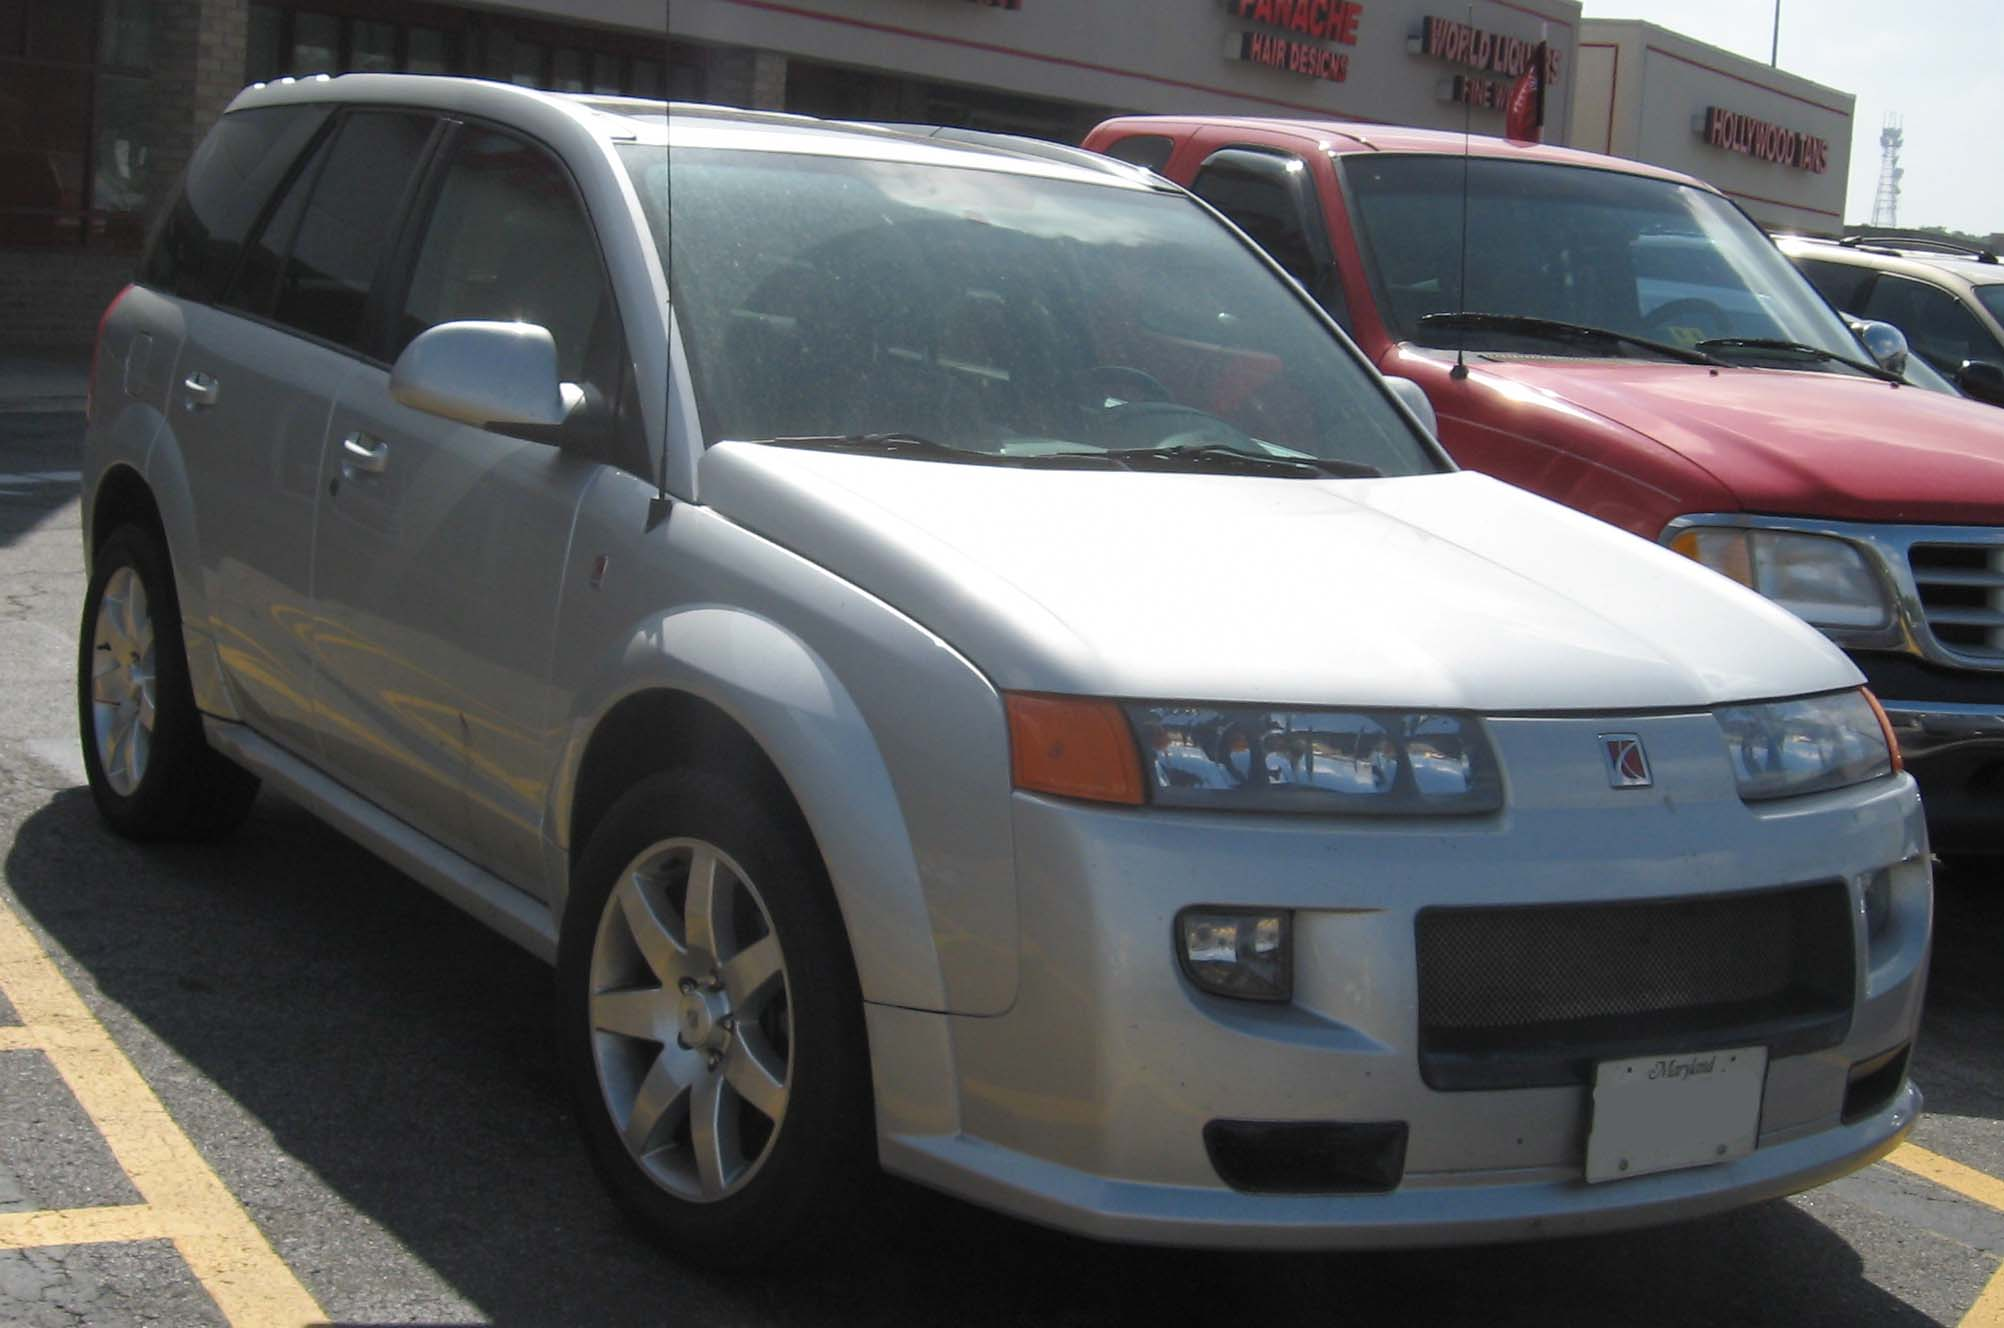 File:04-06 Saturn Vue RedLine.jpg - Wikimedia Commons